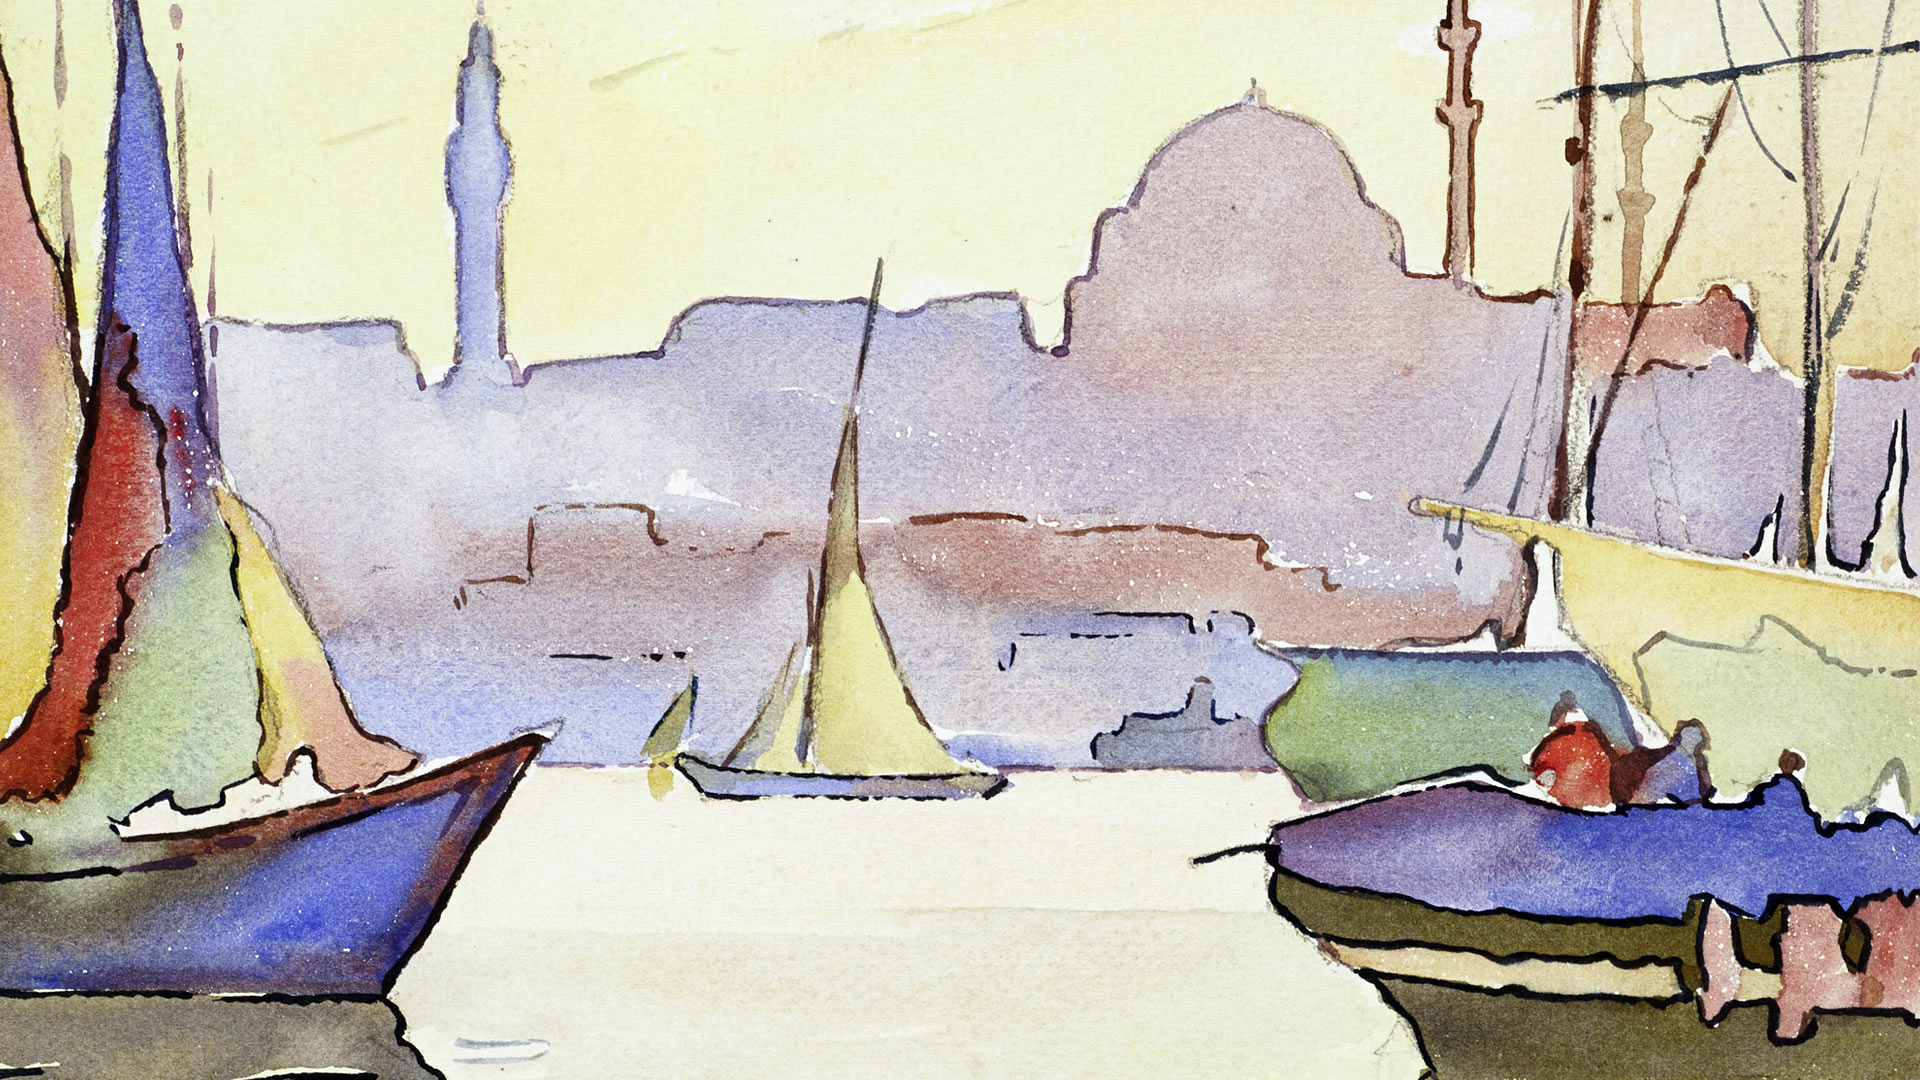 Watercolor painting of a sunset scene with sailboats